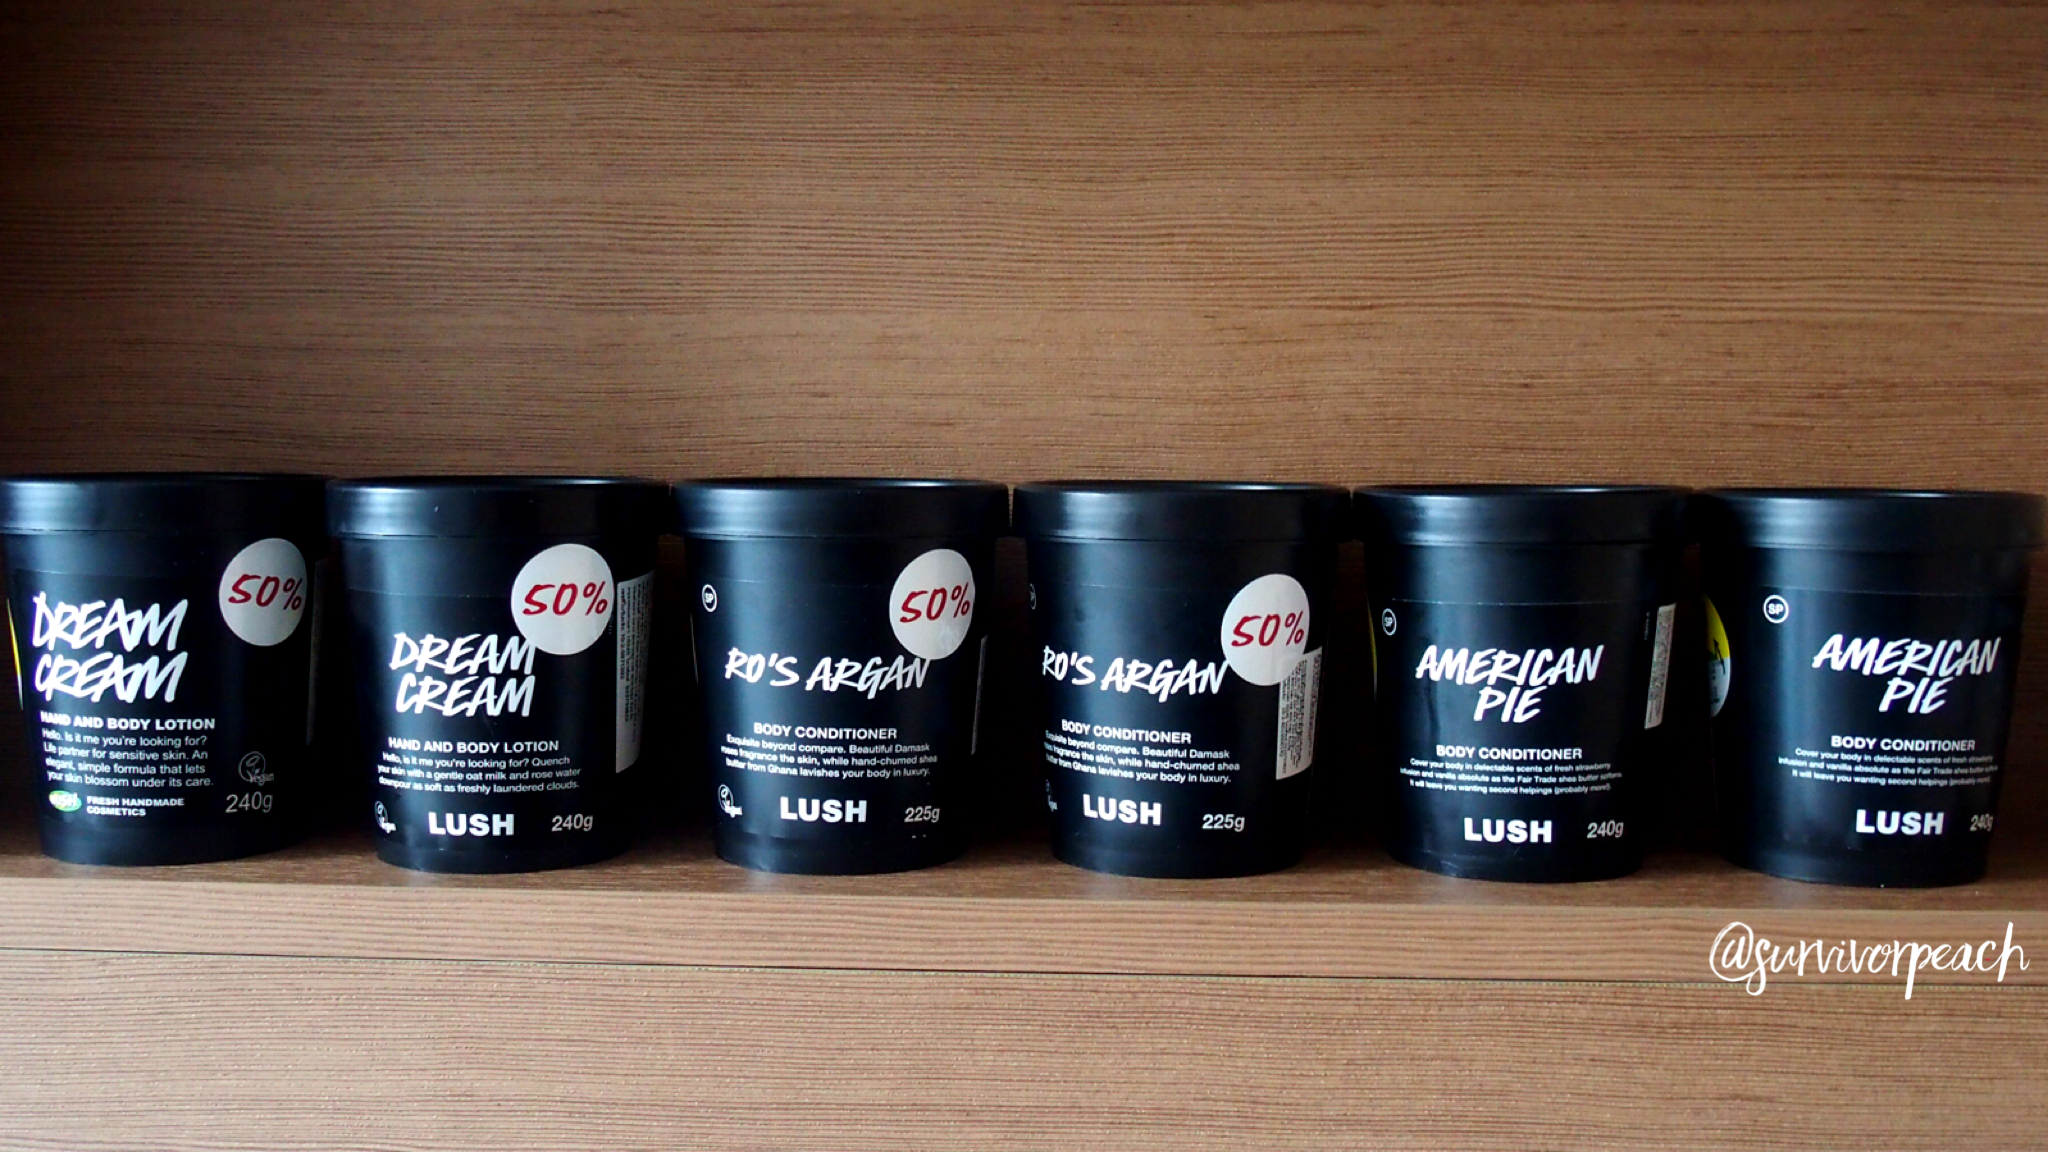 Lush Dream Cream, Ro's Argan, American Pie